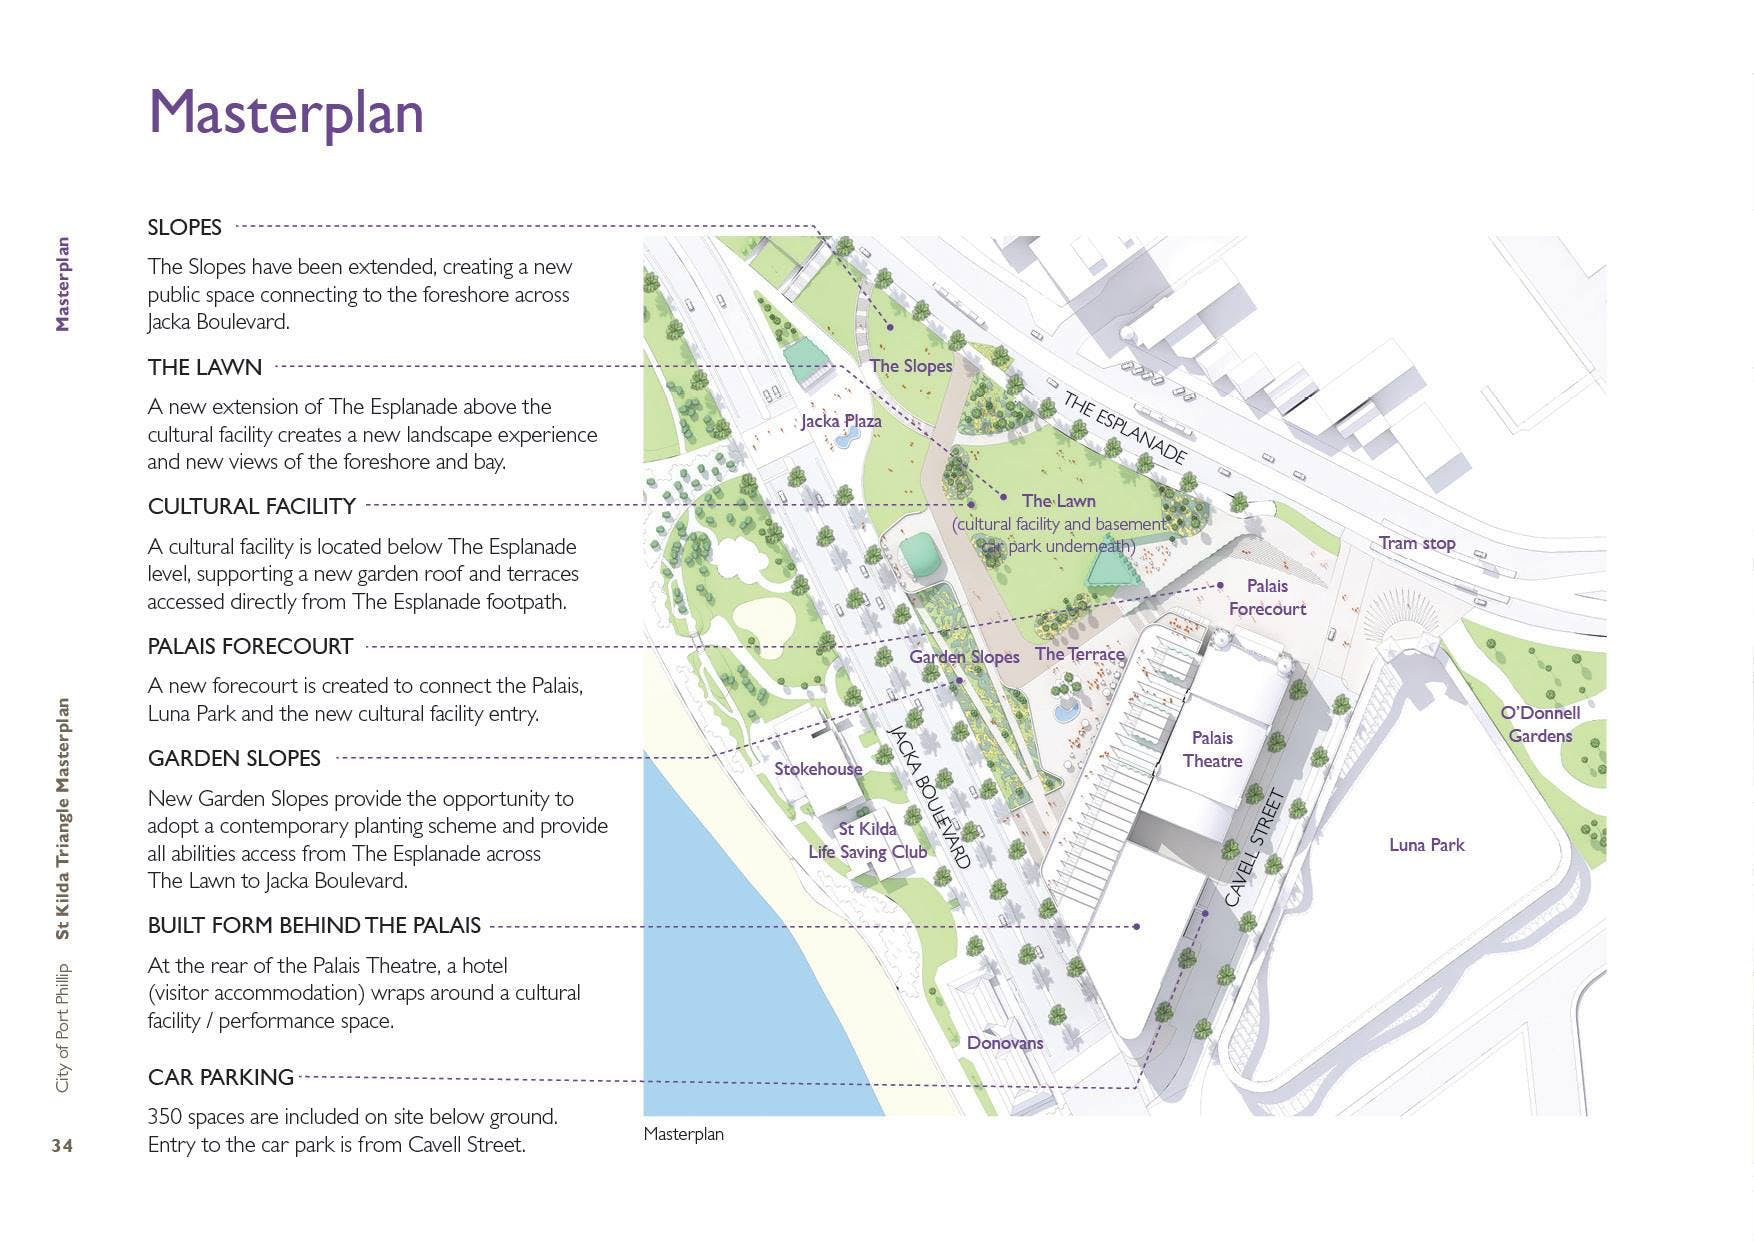 Masterplan overview